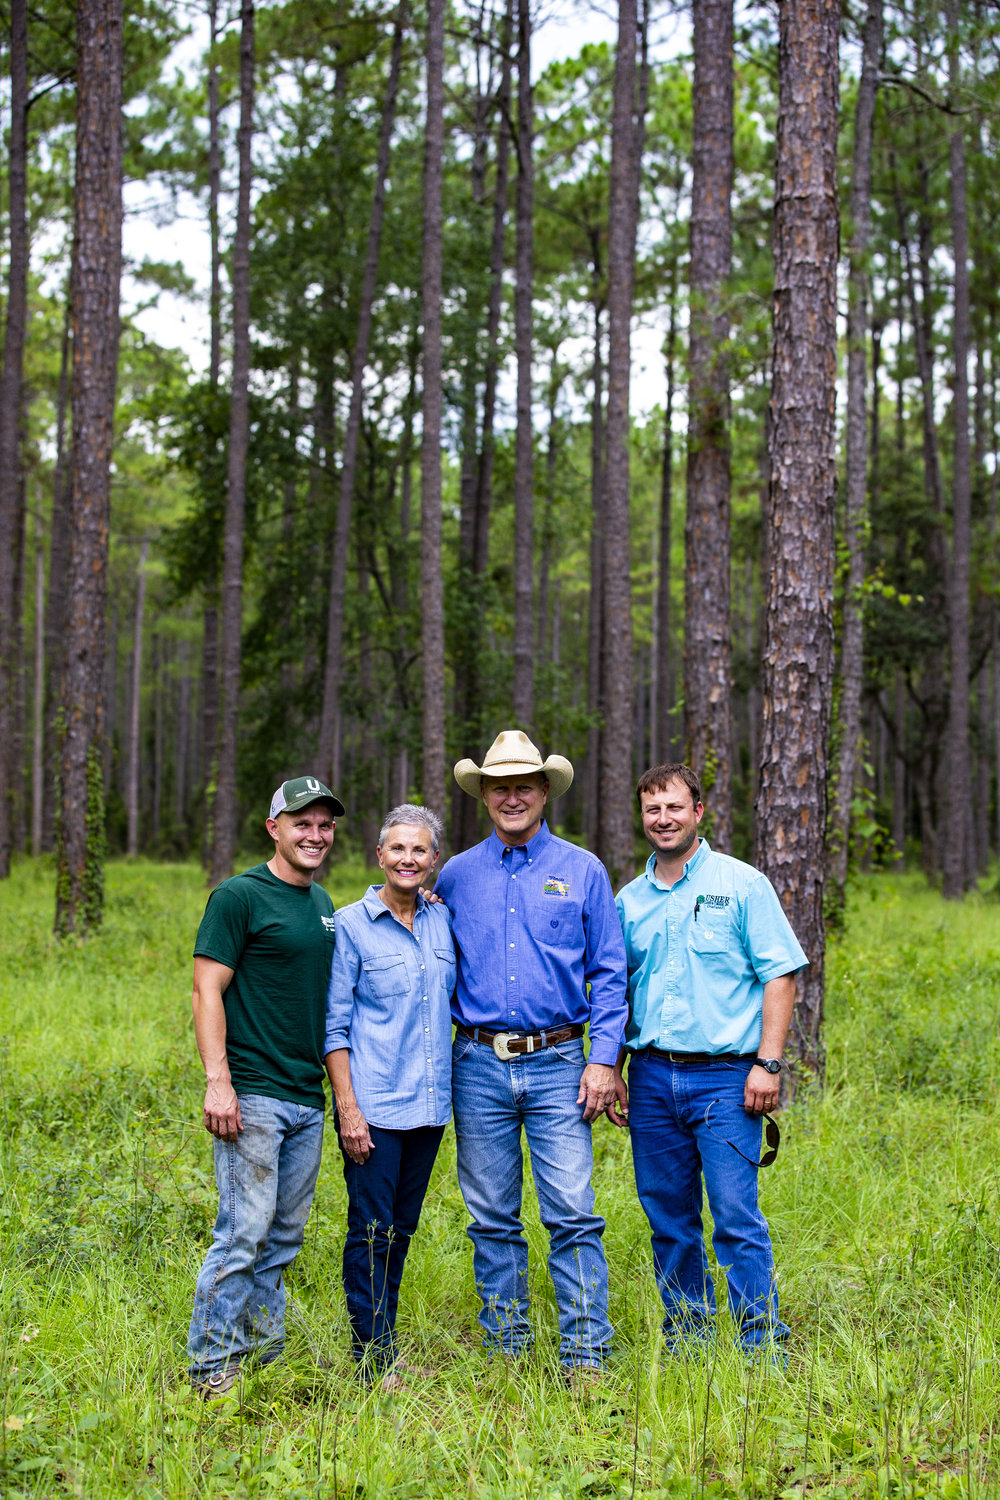 Left to right, Korey Griner, Lynetta Usher Griner, Ken Griner and Eric Handley pose for a portrait on their property. Lynetta said Farmer of the Year belongs to her son, husband and business partner as well because the farm is a group effort.